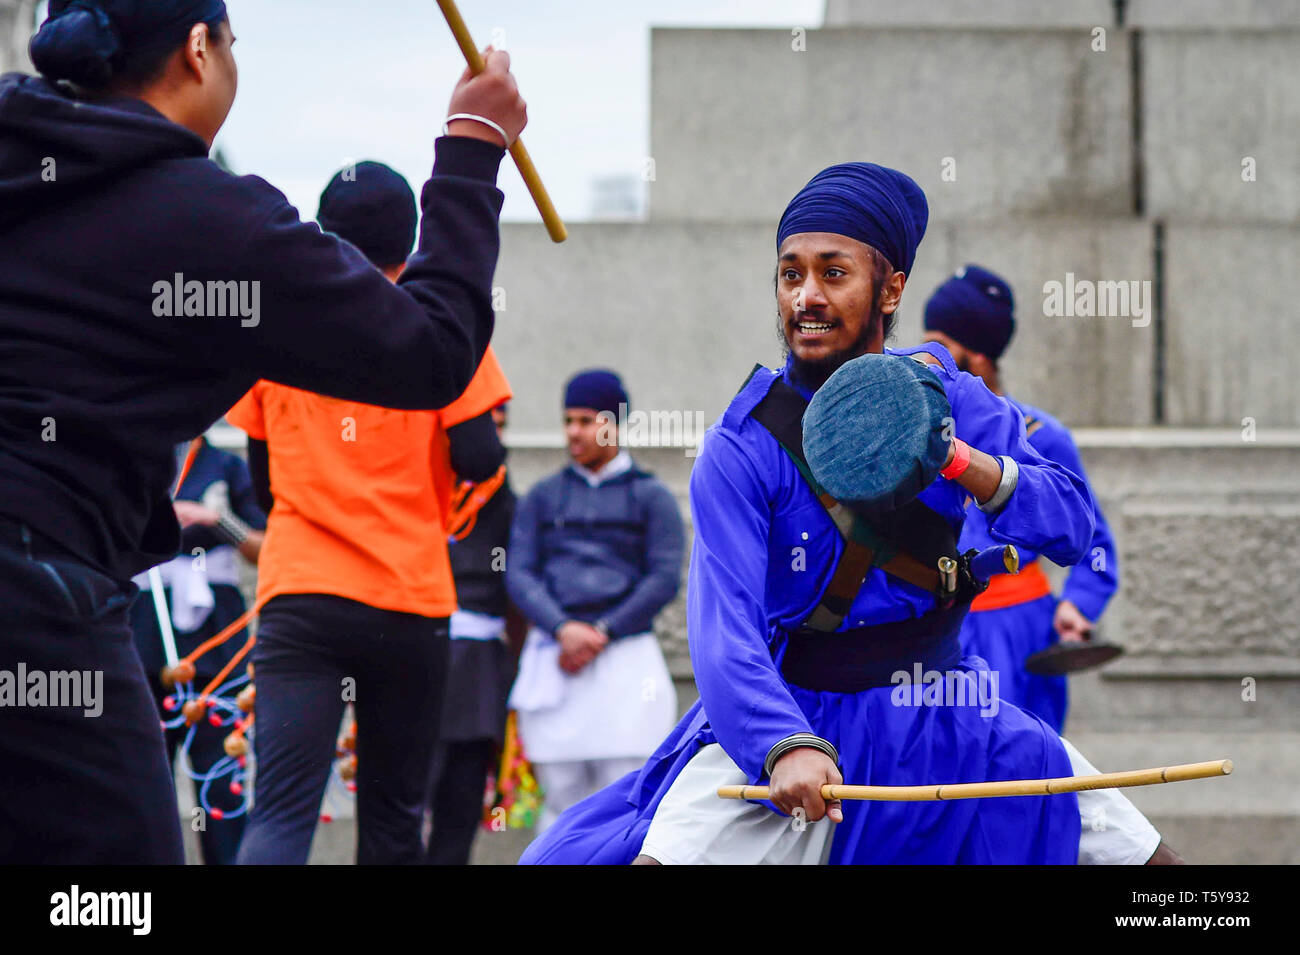 London, UK.  27 April 2019.  Men perform Gatka, Sikh martial arts, during the festival of Vaisakhi in Trafalgar Square, hosted by the Mayor of London.  For Sikhs and Punjabis, the festival celebrates the spring harvest and commemorates the founding of the Khalsa community over 300 years ago.   Credit: Stephen Chung / Alamy Live News - Stock Image